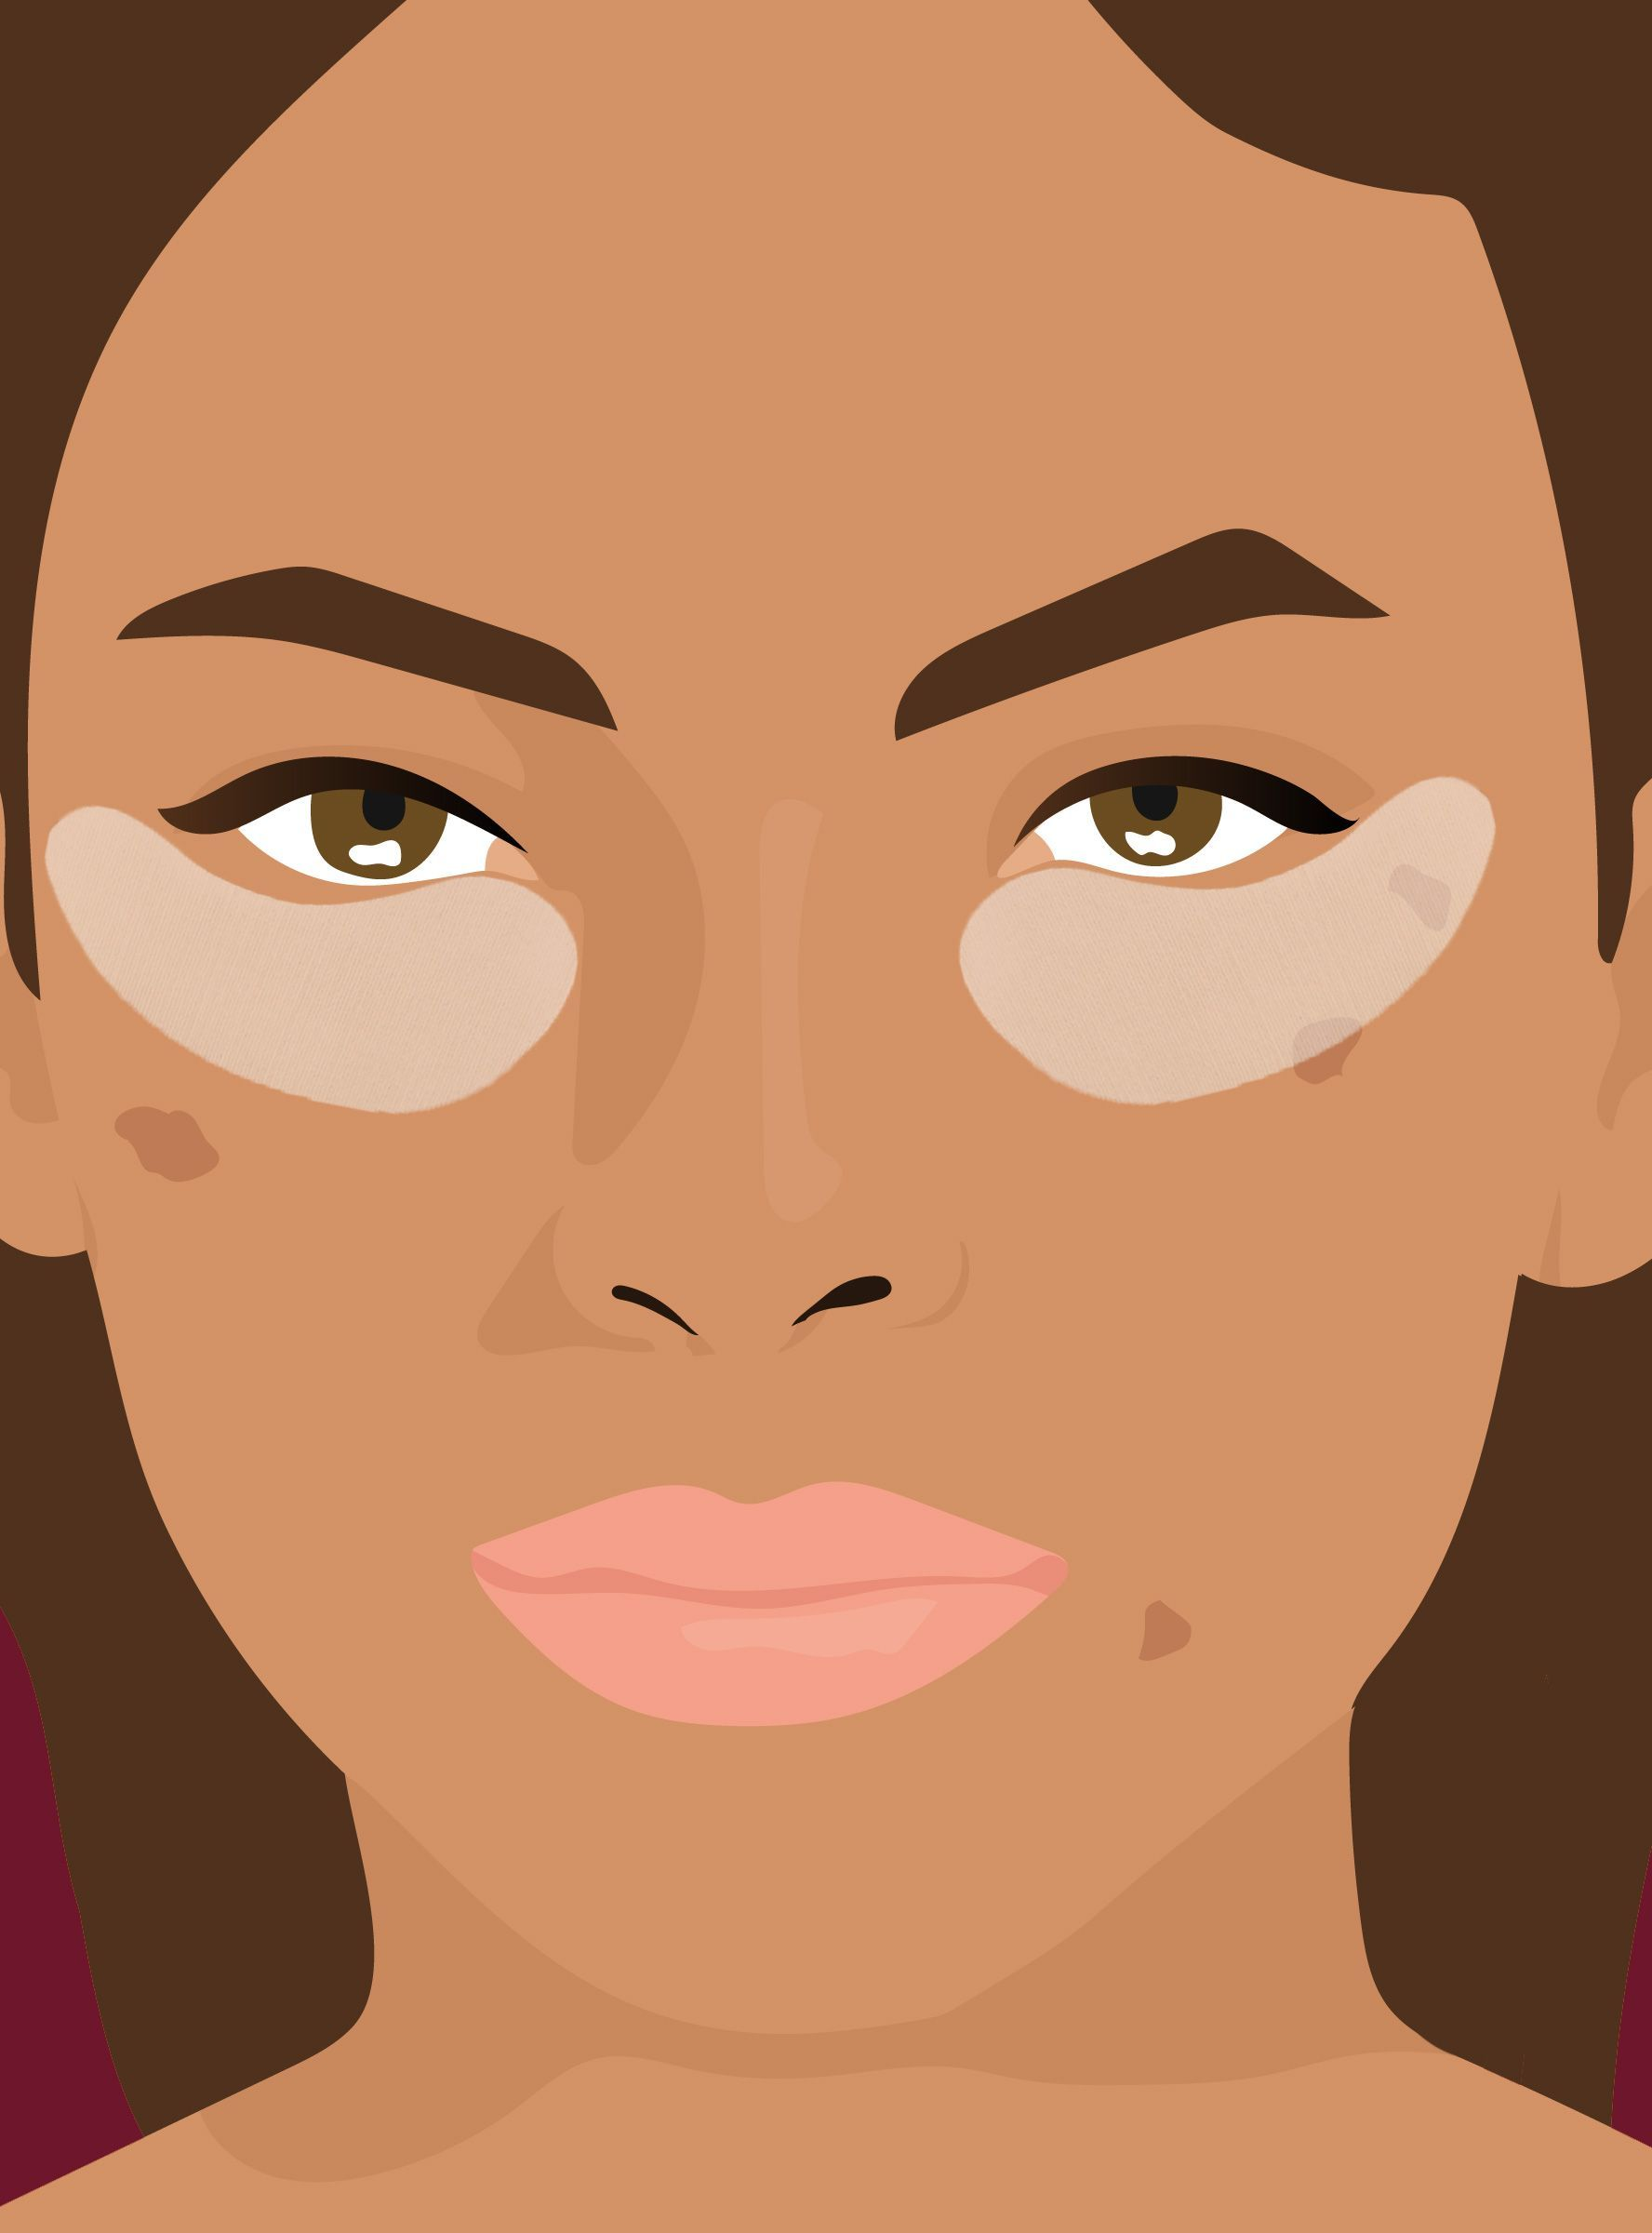 How To Fake 8 Hours Of Sleep In 20 Minutes Or Less Refinery29 Beauty Skin Care Routine Beauty Illustration Skin Care